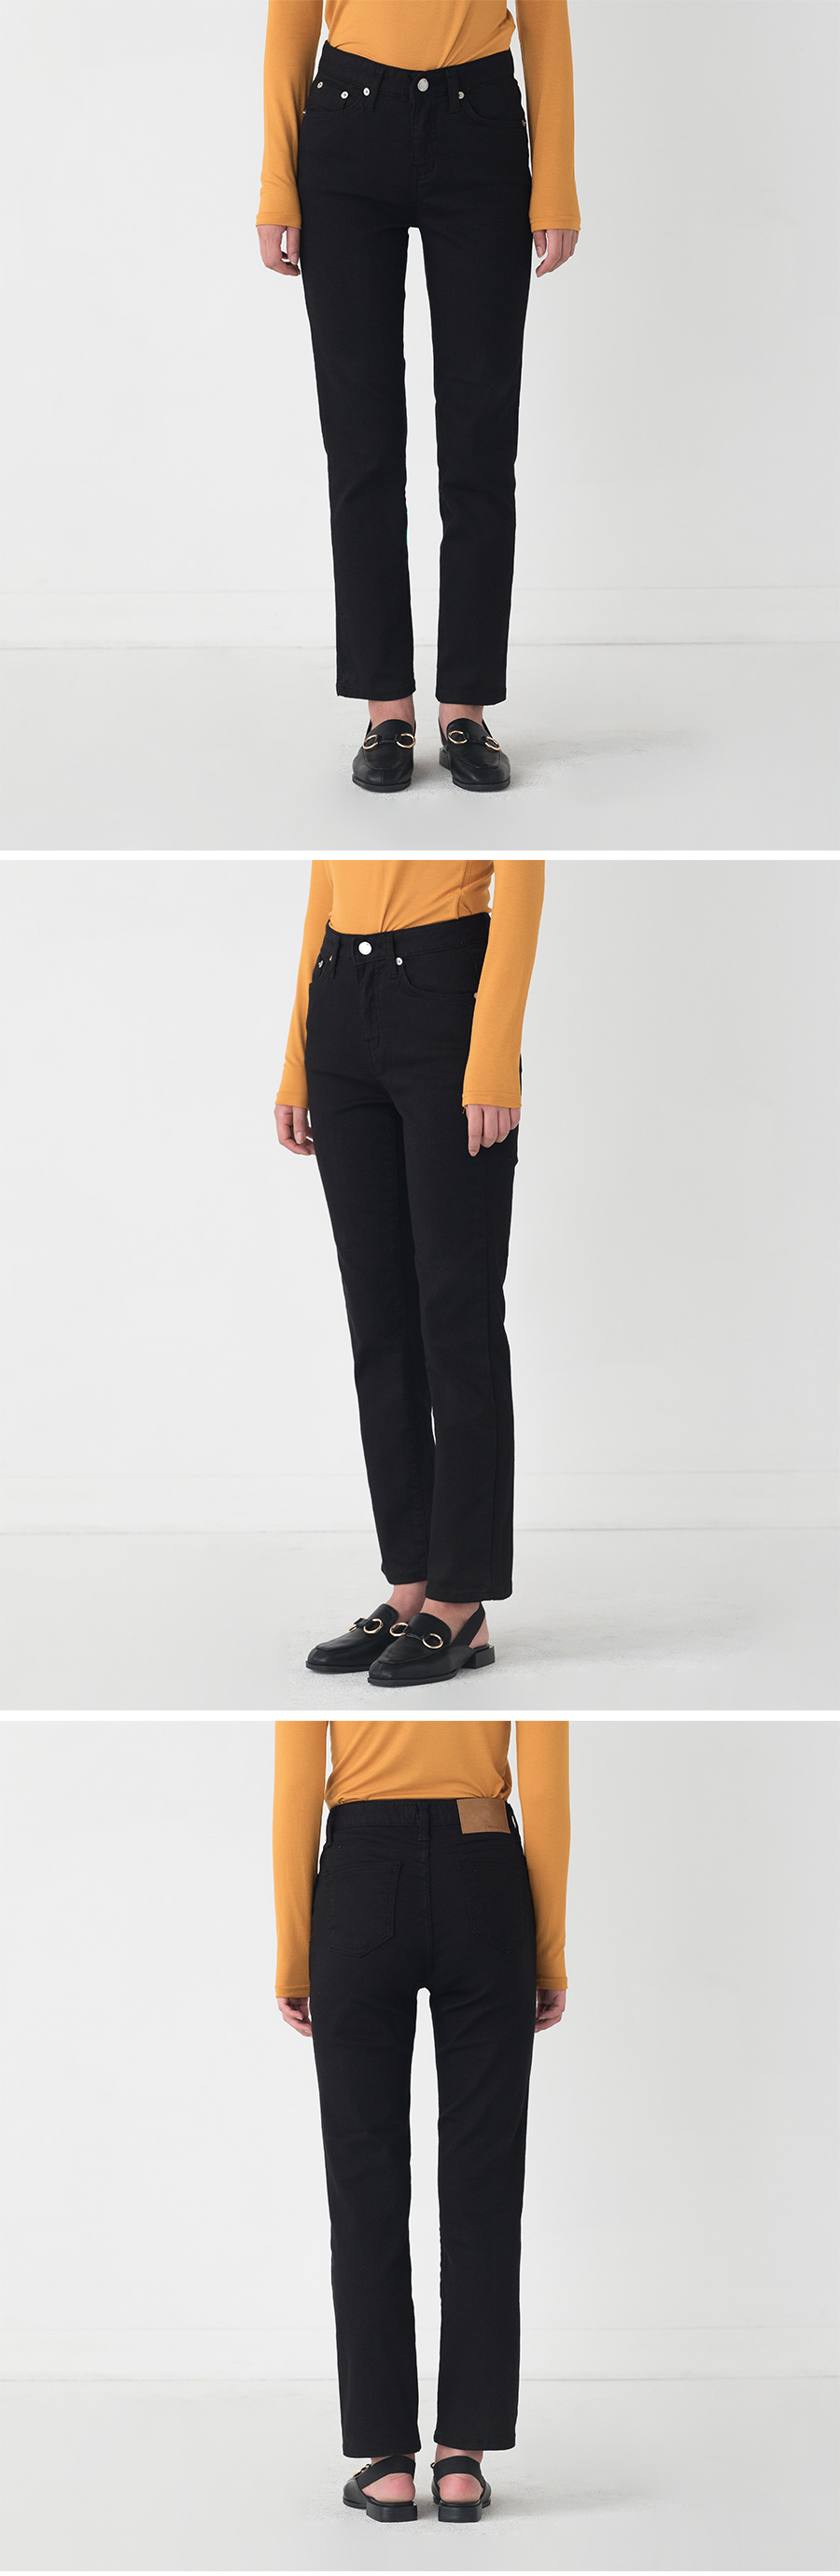 normal straight pants